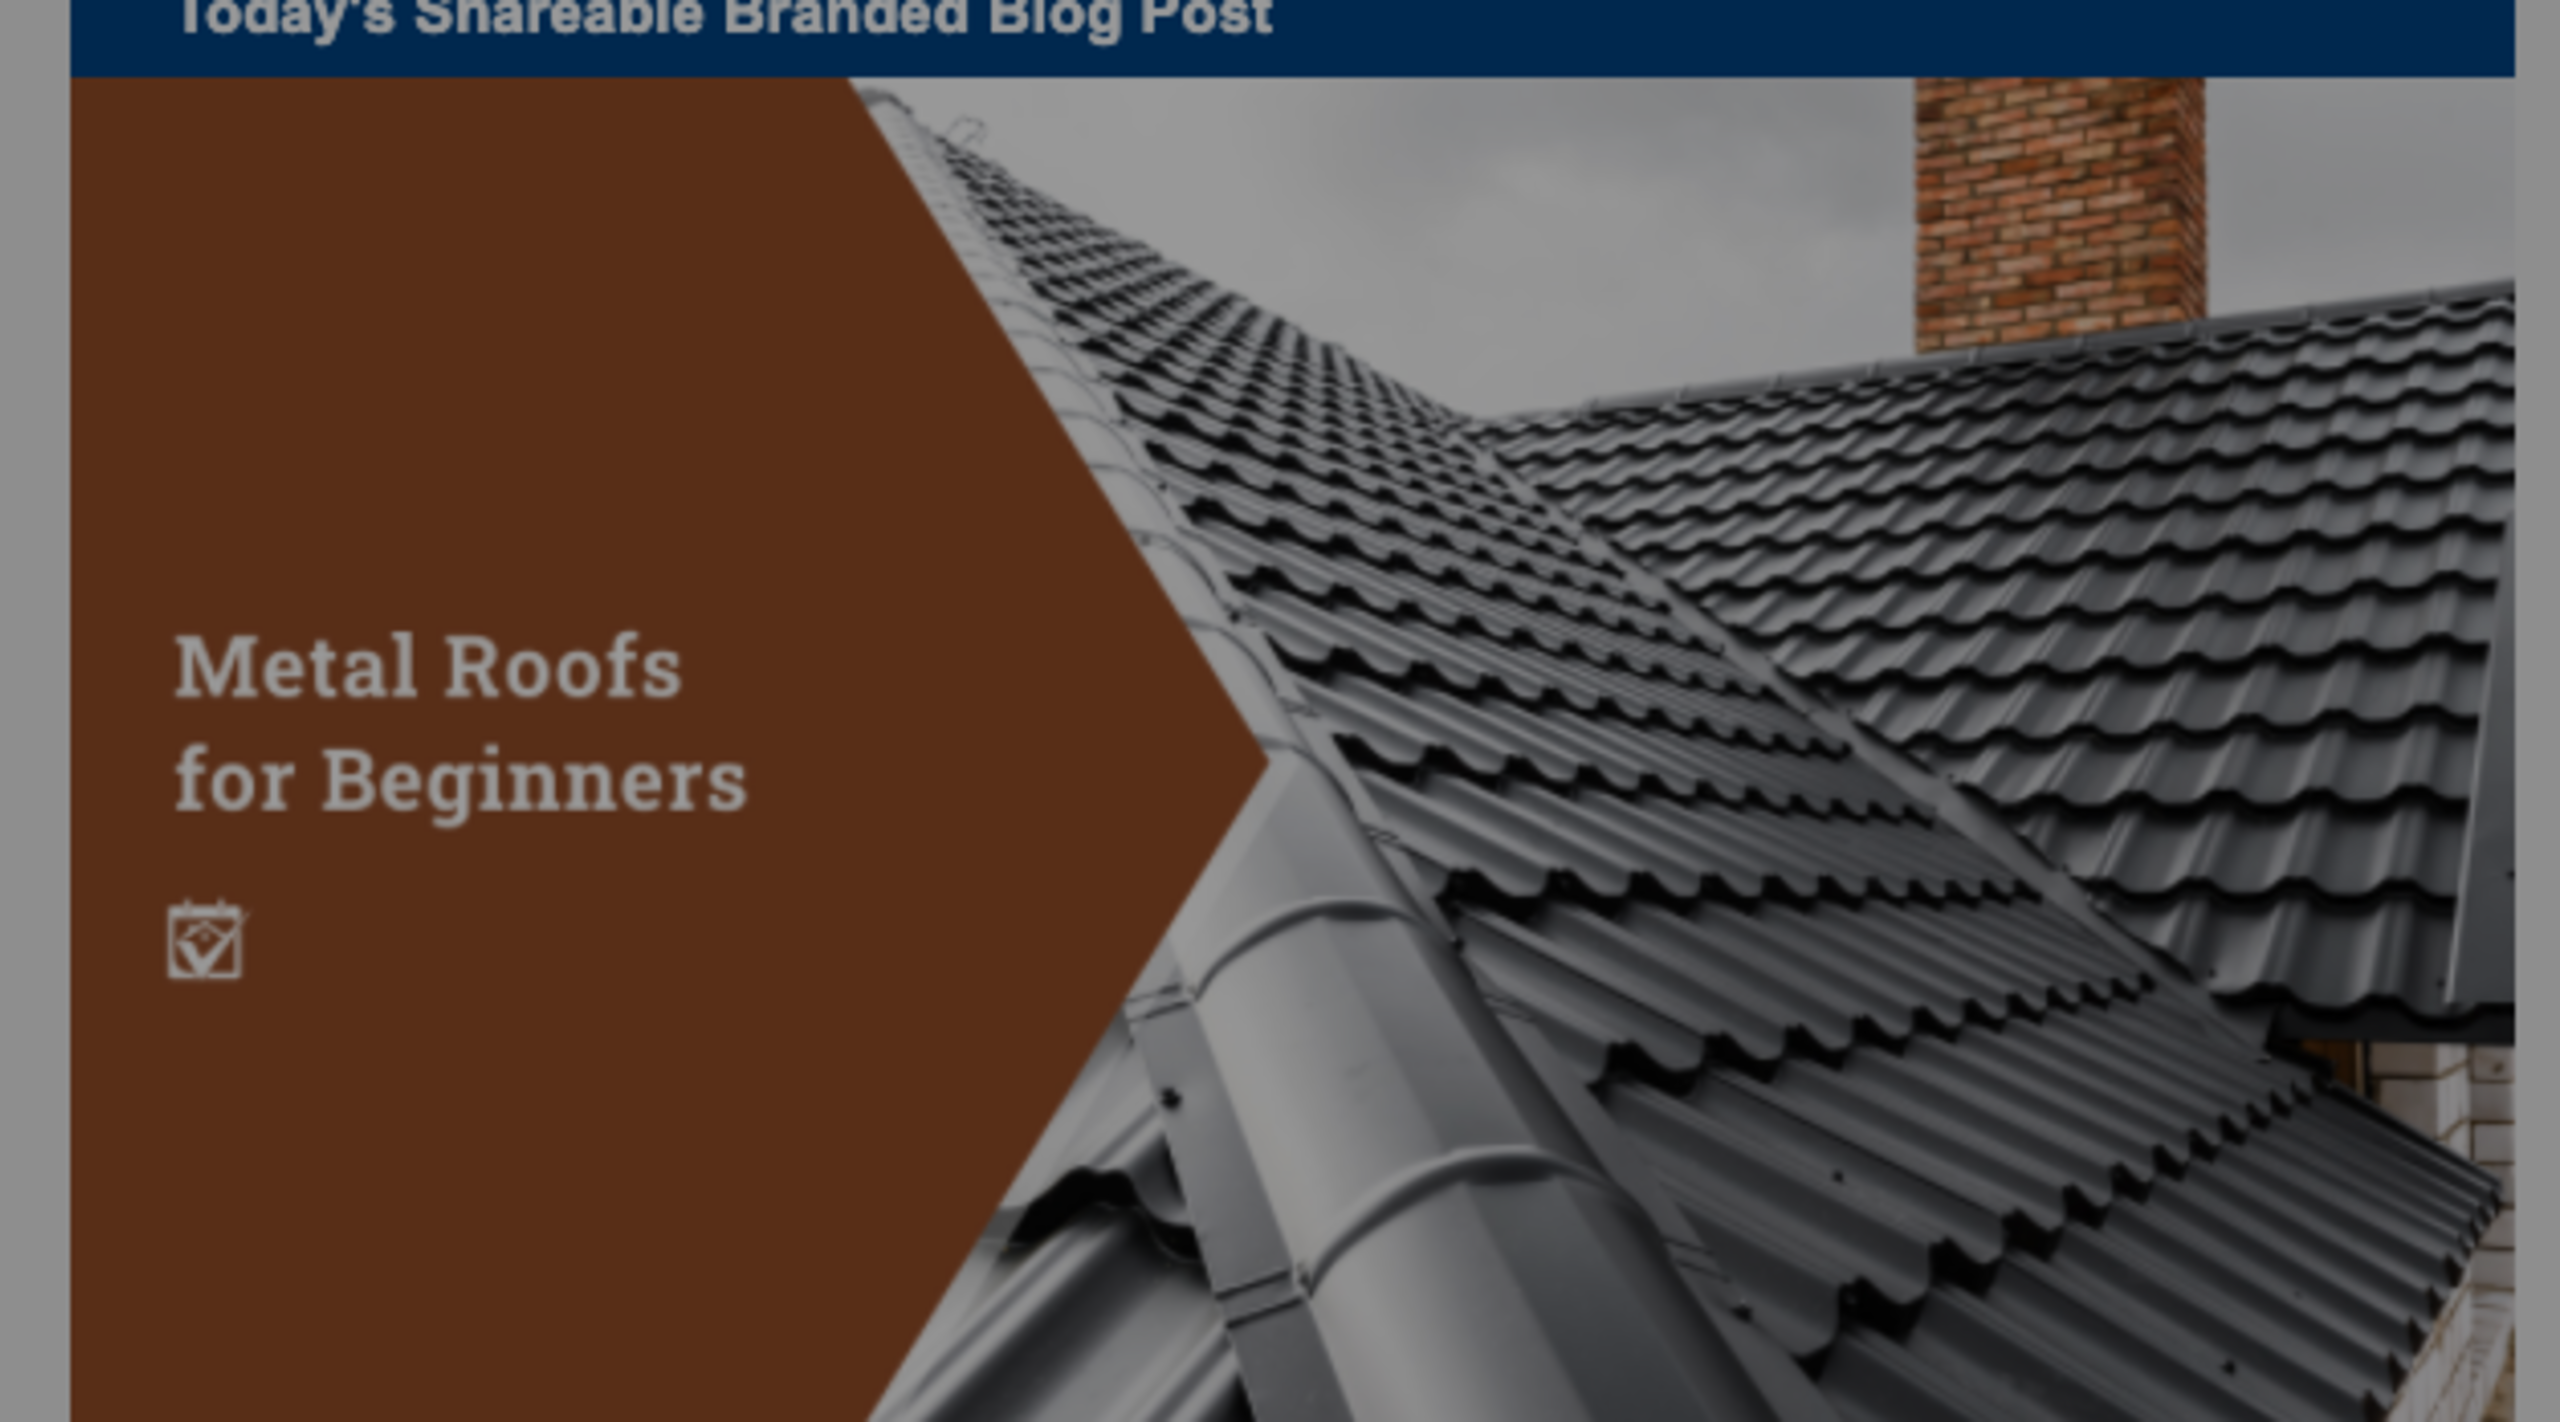 Metal Roofs for Beginners